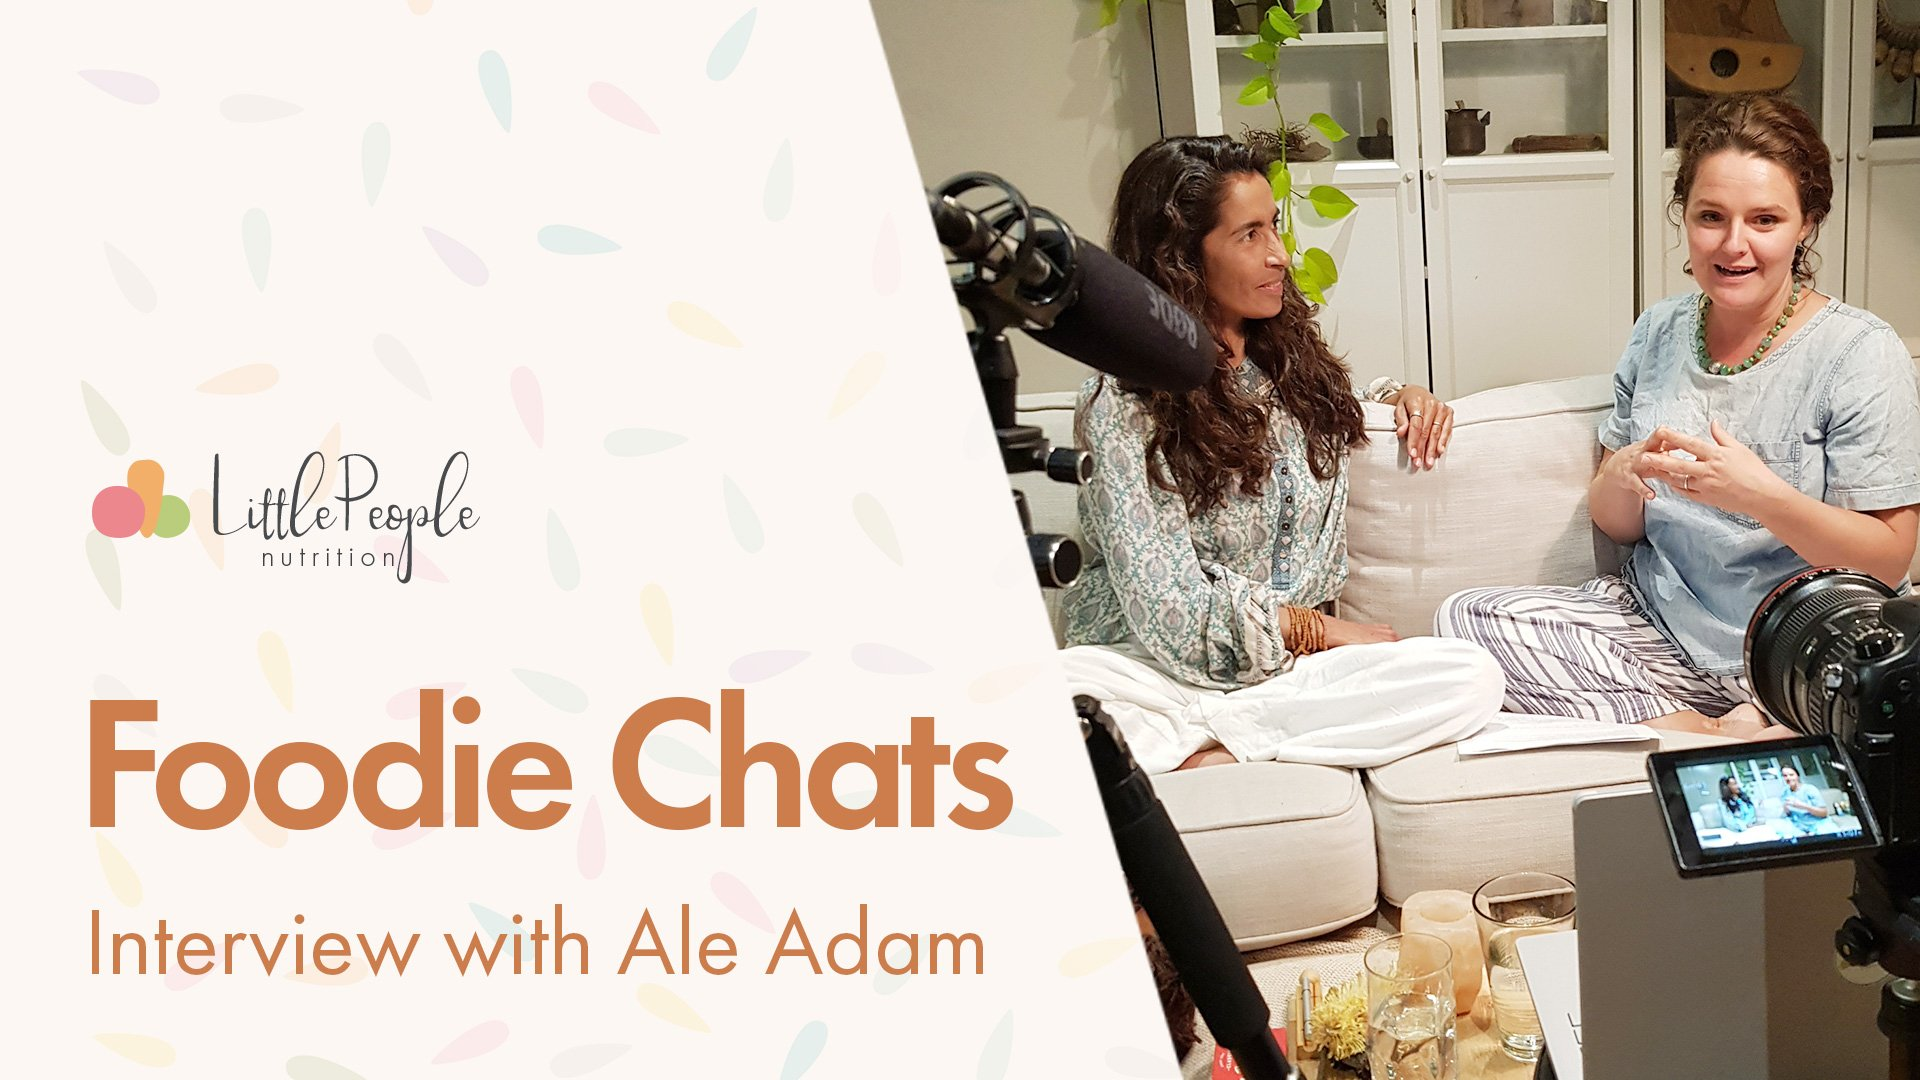 Foodie chats with Ale